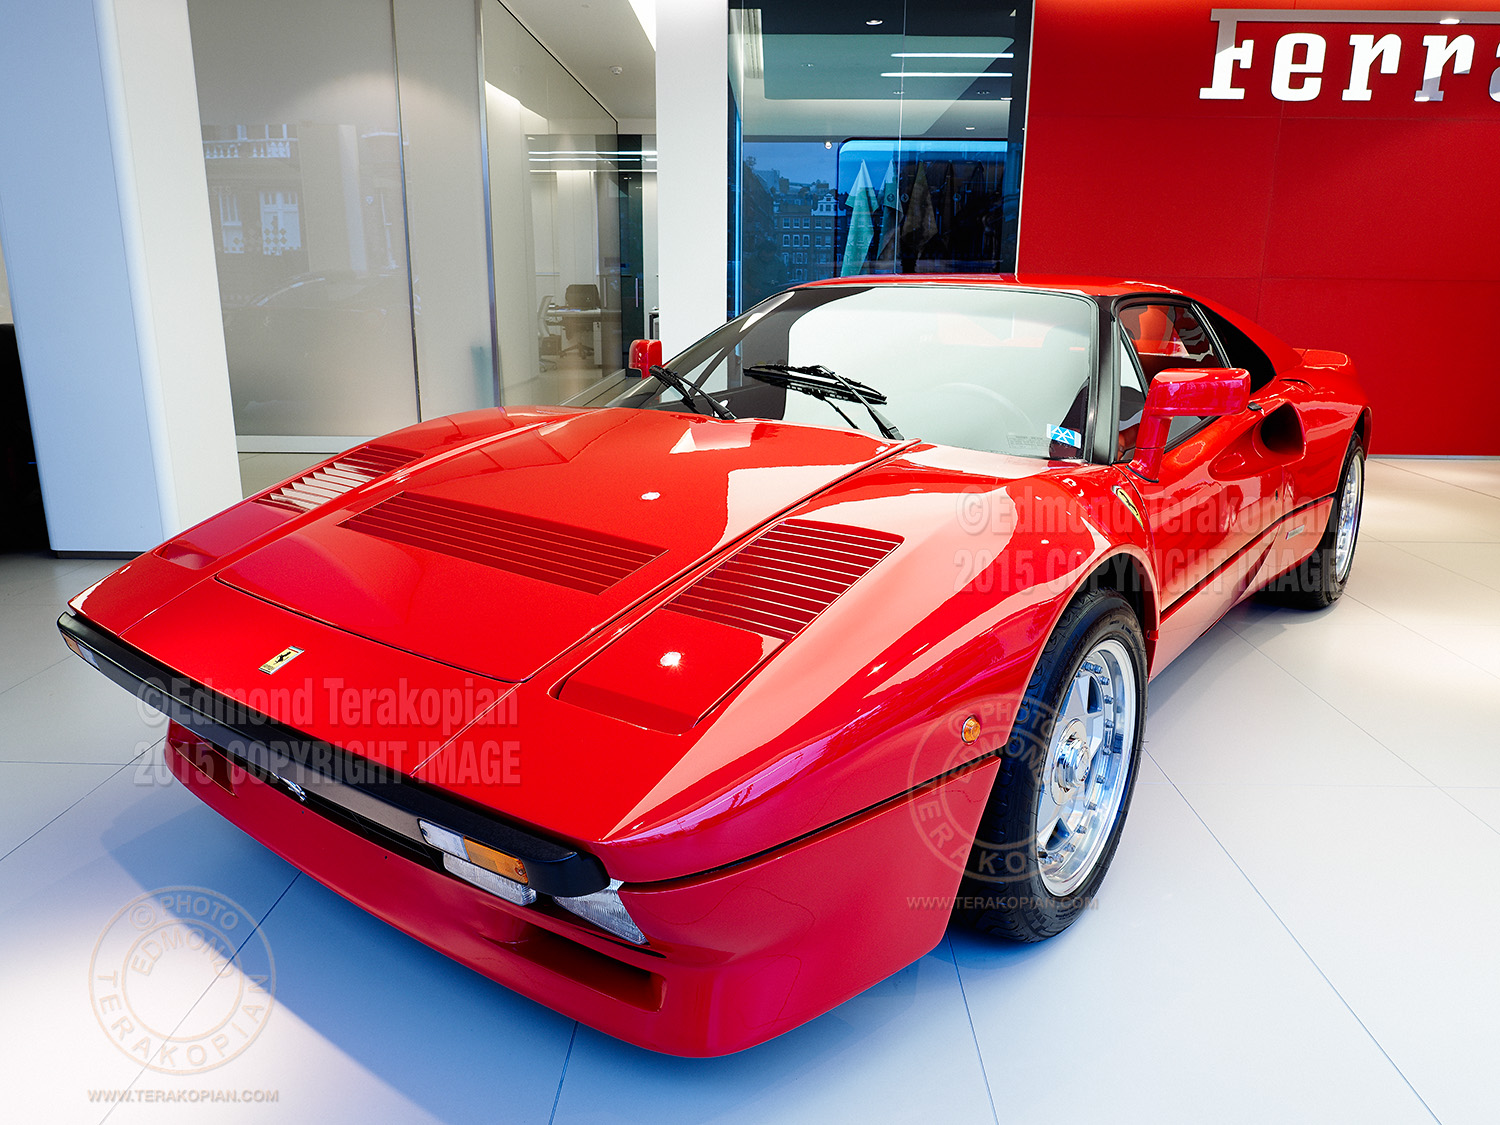 A rare Ferrari 288 GTO built in 1985 with only 883 miles on the clock. It is valued at £2,000,000 and available from H.R. Owen in South Kensington, London. Image shot on the Olympus OM-D E-M5 II, using the multi shot sensor shift facility, creating a 40 megapixel image. January 30, 2015. Photo: ©Edmond Terakopian